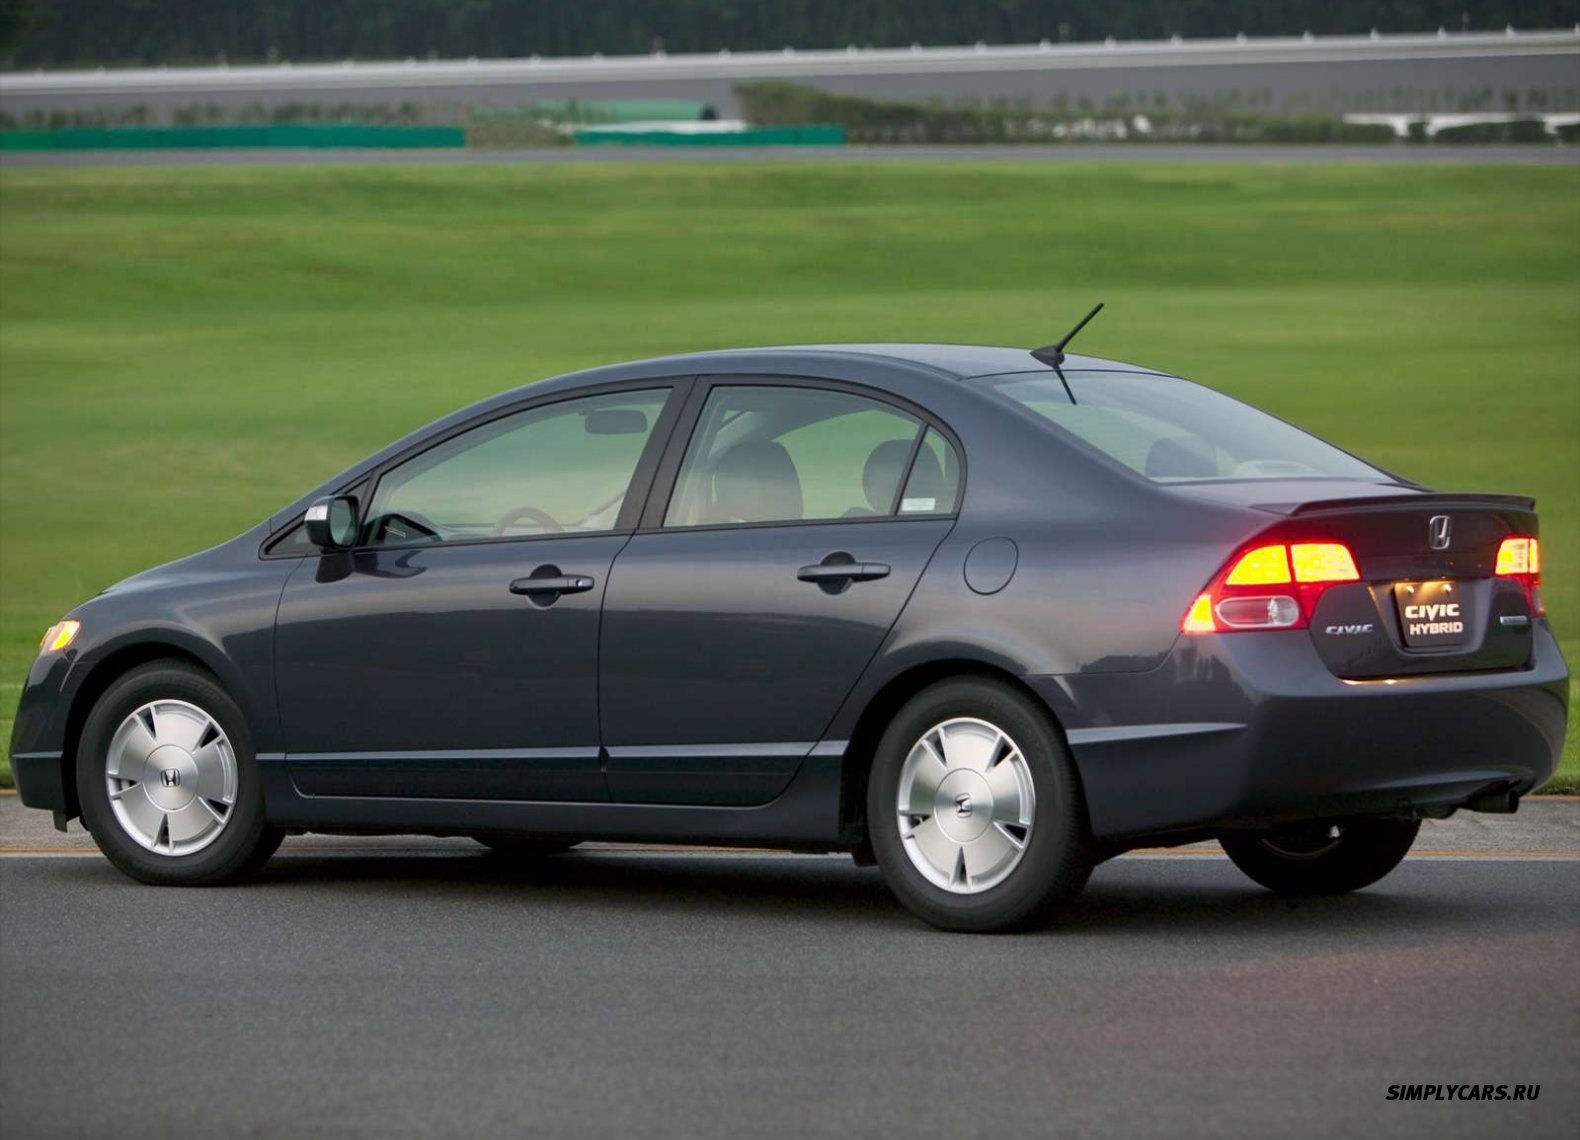 The Honda Civic Japanese ホンダシビック Honda Shibikku is a line of cars manufactured by Honda Originally a subcompact the Civic has gone through